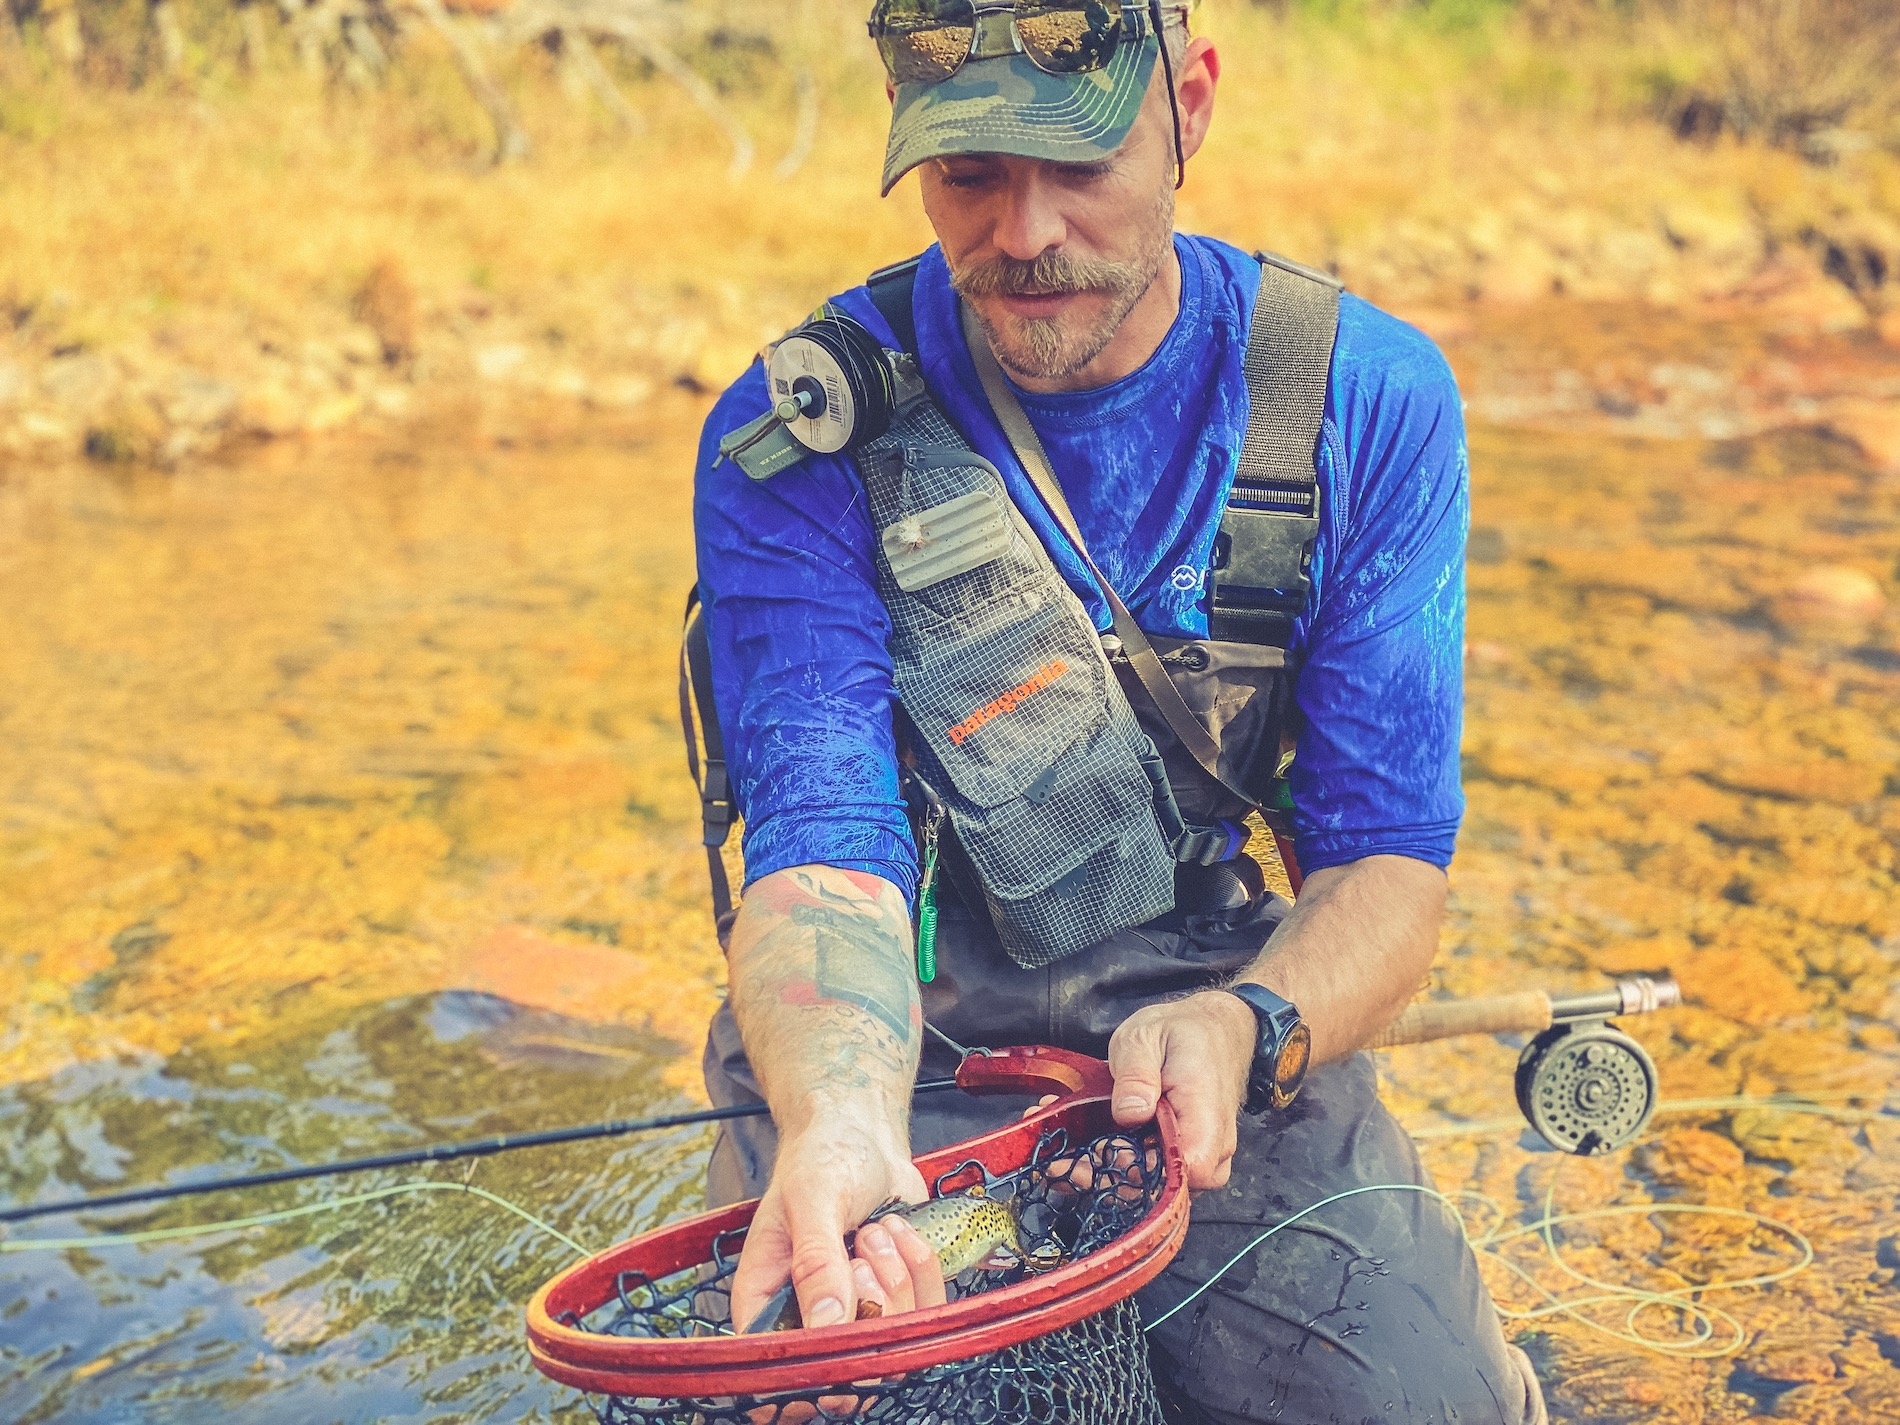 Ep 35: A New Angler's Perspective, with Sam Ayres